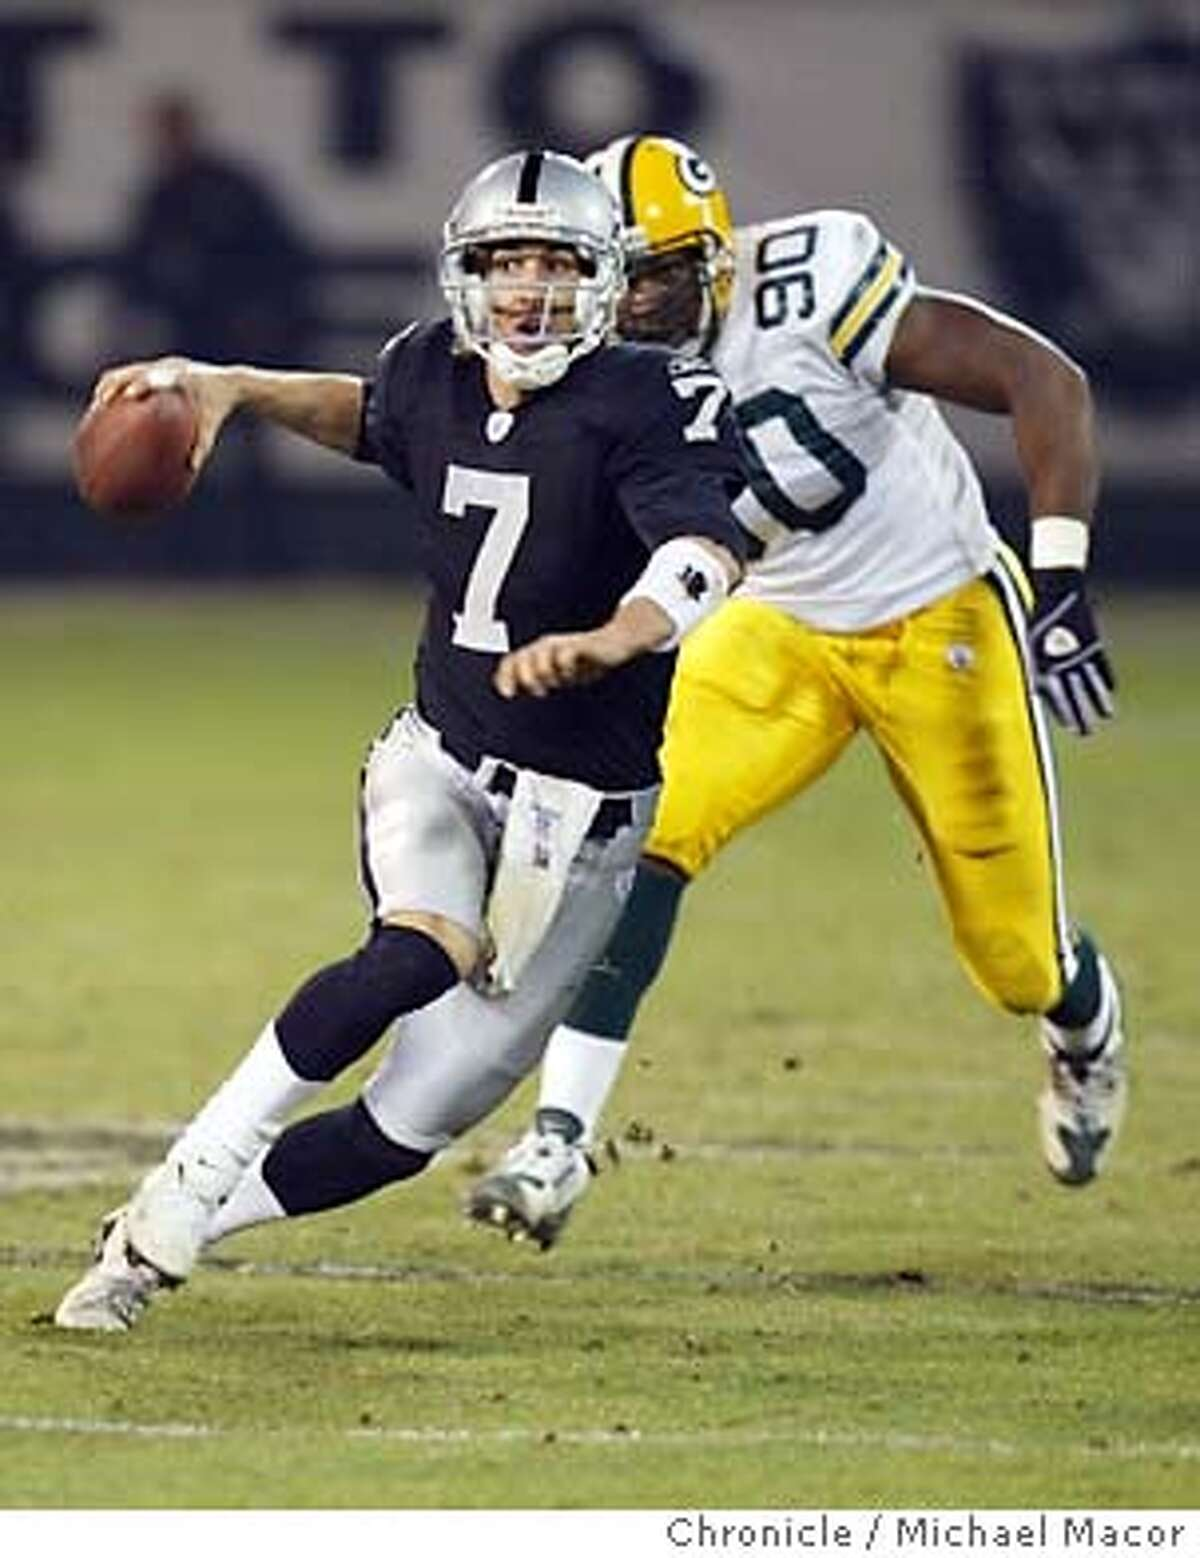 raiders214_mac.jpg Raiders7-Rob JOhnson came in to quarterback the 4th quarter, chased by 90-Chuckie Nwokorie. Monday NIght Footbal at the Oakland Coliseum. Oakland Raiders vs. Green Bay Packers Michael Macor/ The Chronicle